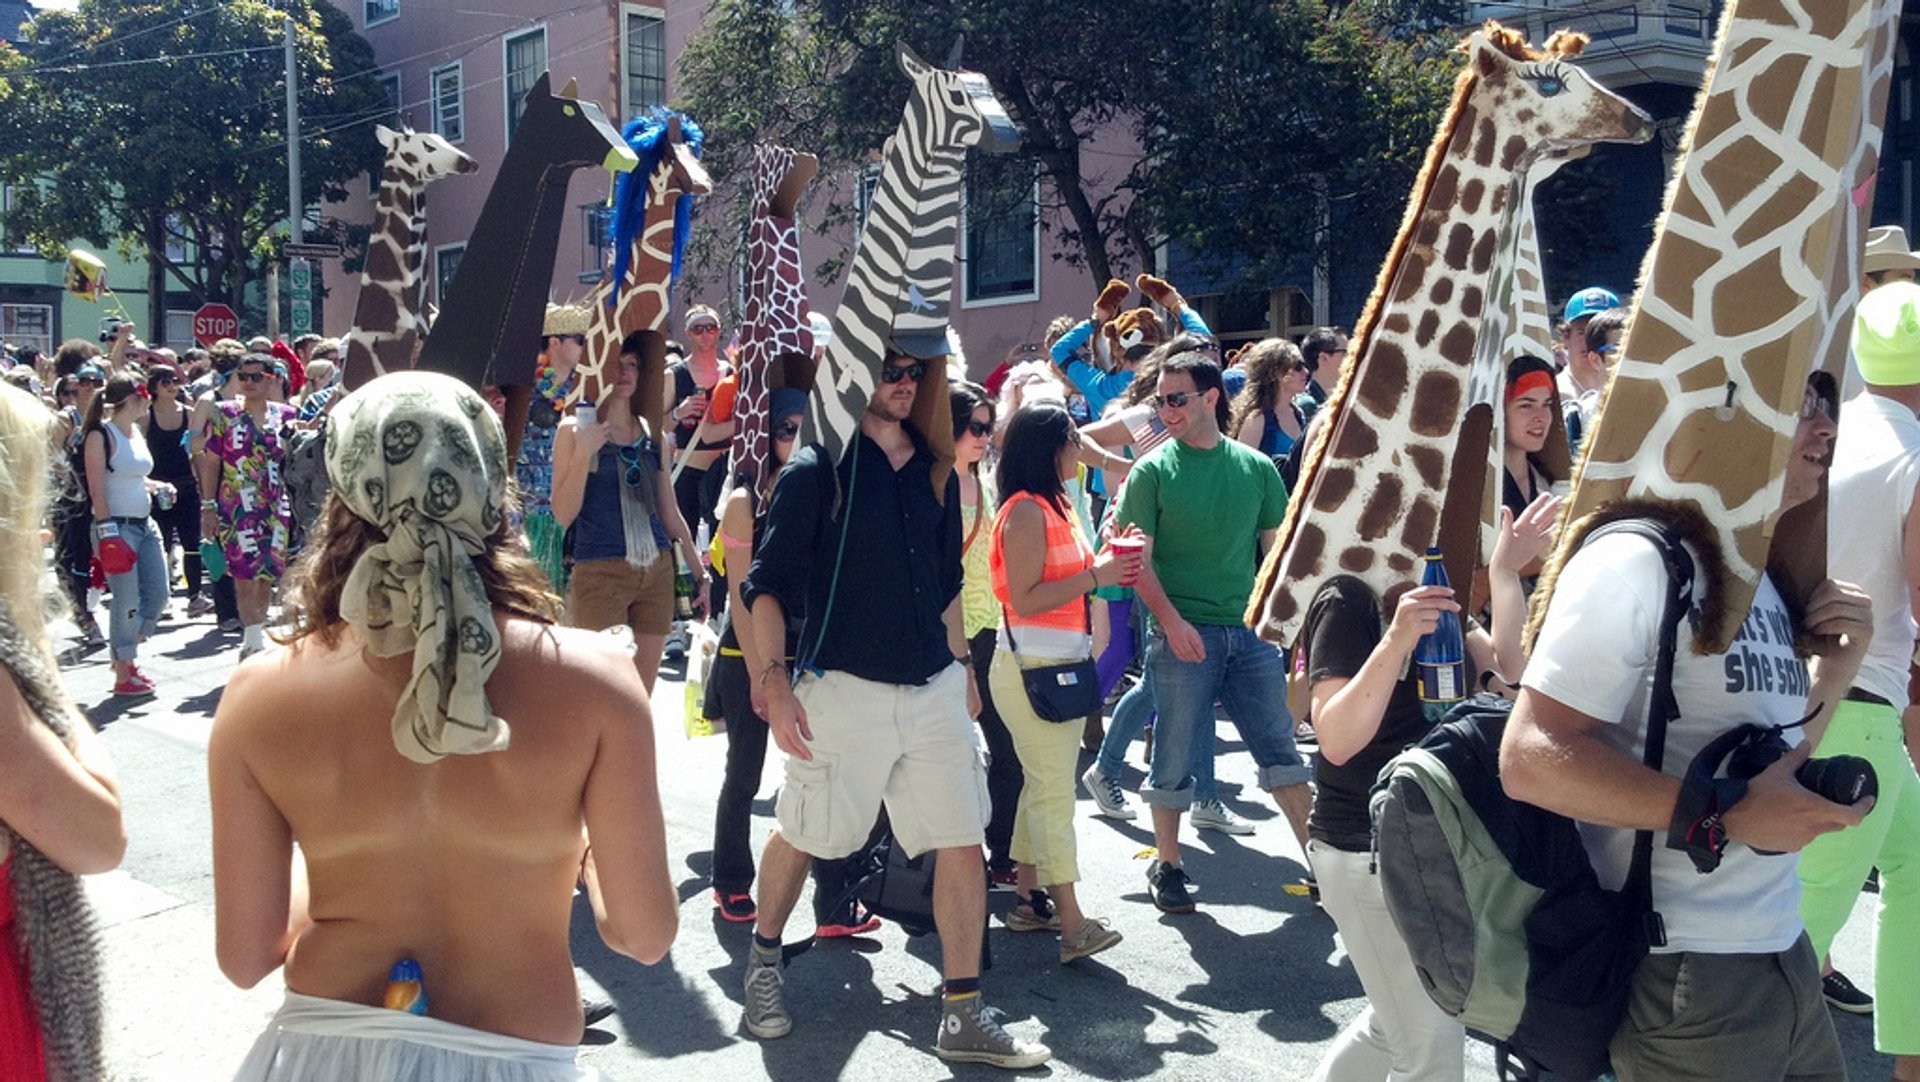 Bay to Breakers in San Francisco - Best Season 2020